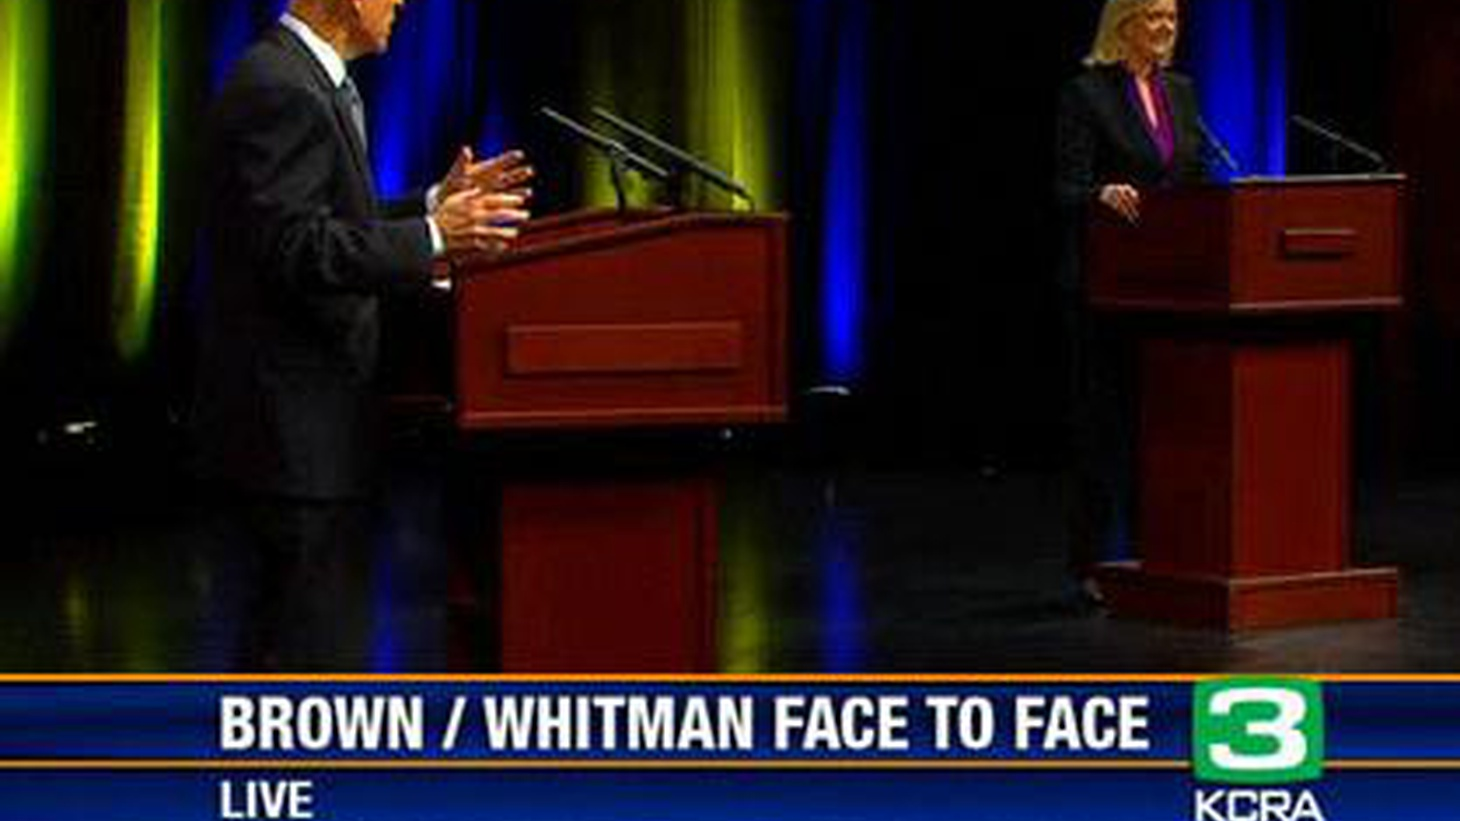 We've just broadcast the first face-to-face confrontation between this year's candidates for Governor, Attorney General Jerry Brown and former eBay CEO Meg Whitman. We get reactions from Republicans and Democrats. Did Brown explain how 45 years in politics qualify him to be Governor all over again? Did Whitman demonstrate how her business experience prepared her to start at the top in politics? In what could be a low turnout election, did they reach their parties' most likely voters? What about Independents? On our rebroadcast of To the Point, money and influence on Capitol Hill.